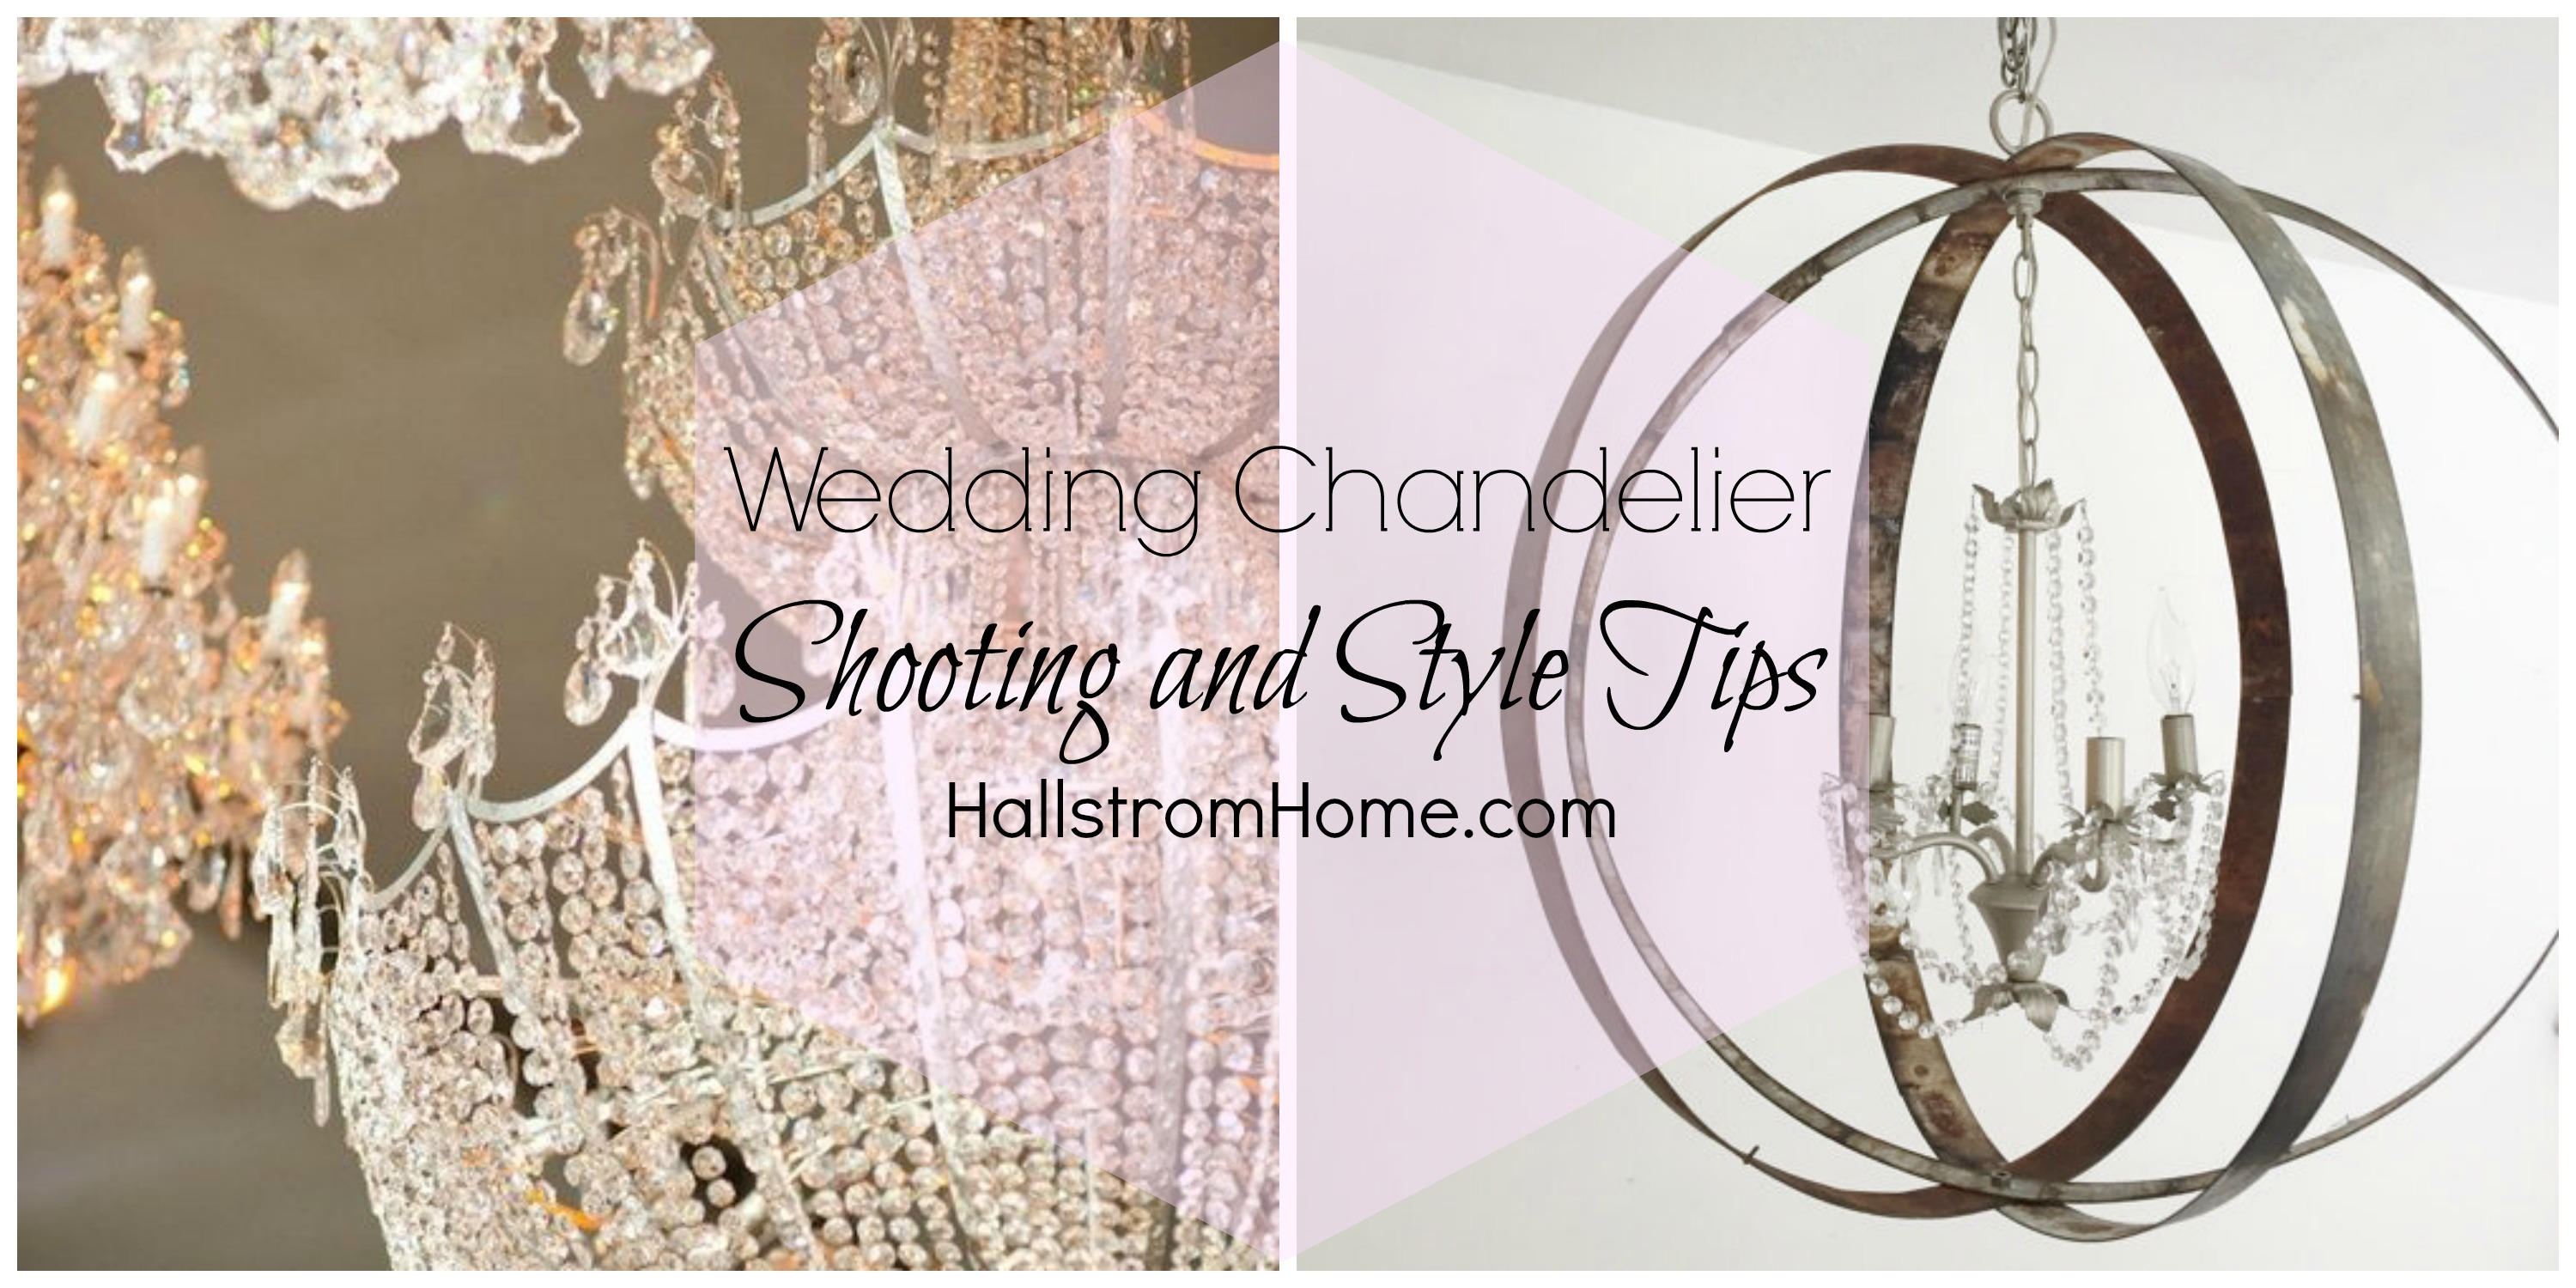 Wedding Chandelier Shooting and Style Tips - Hallstrom Home